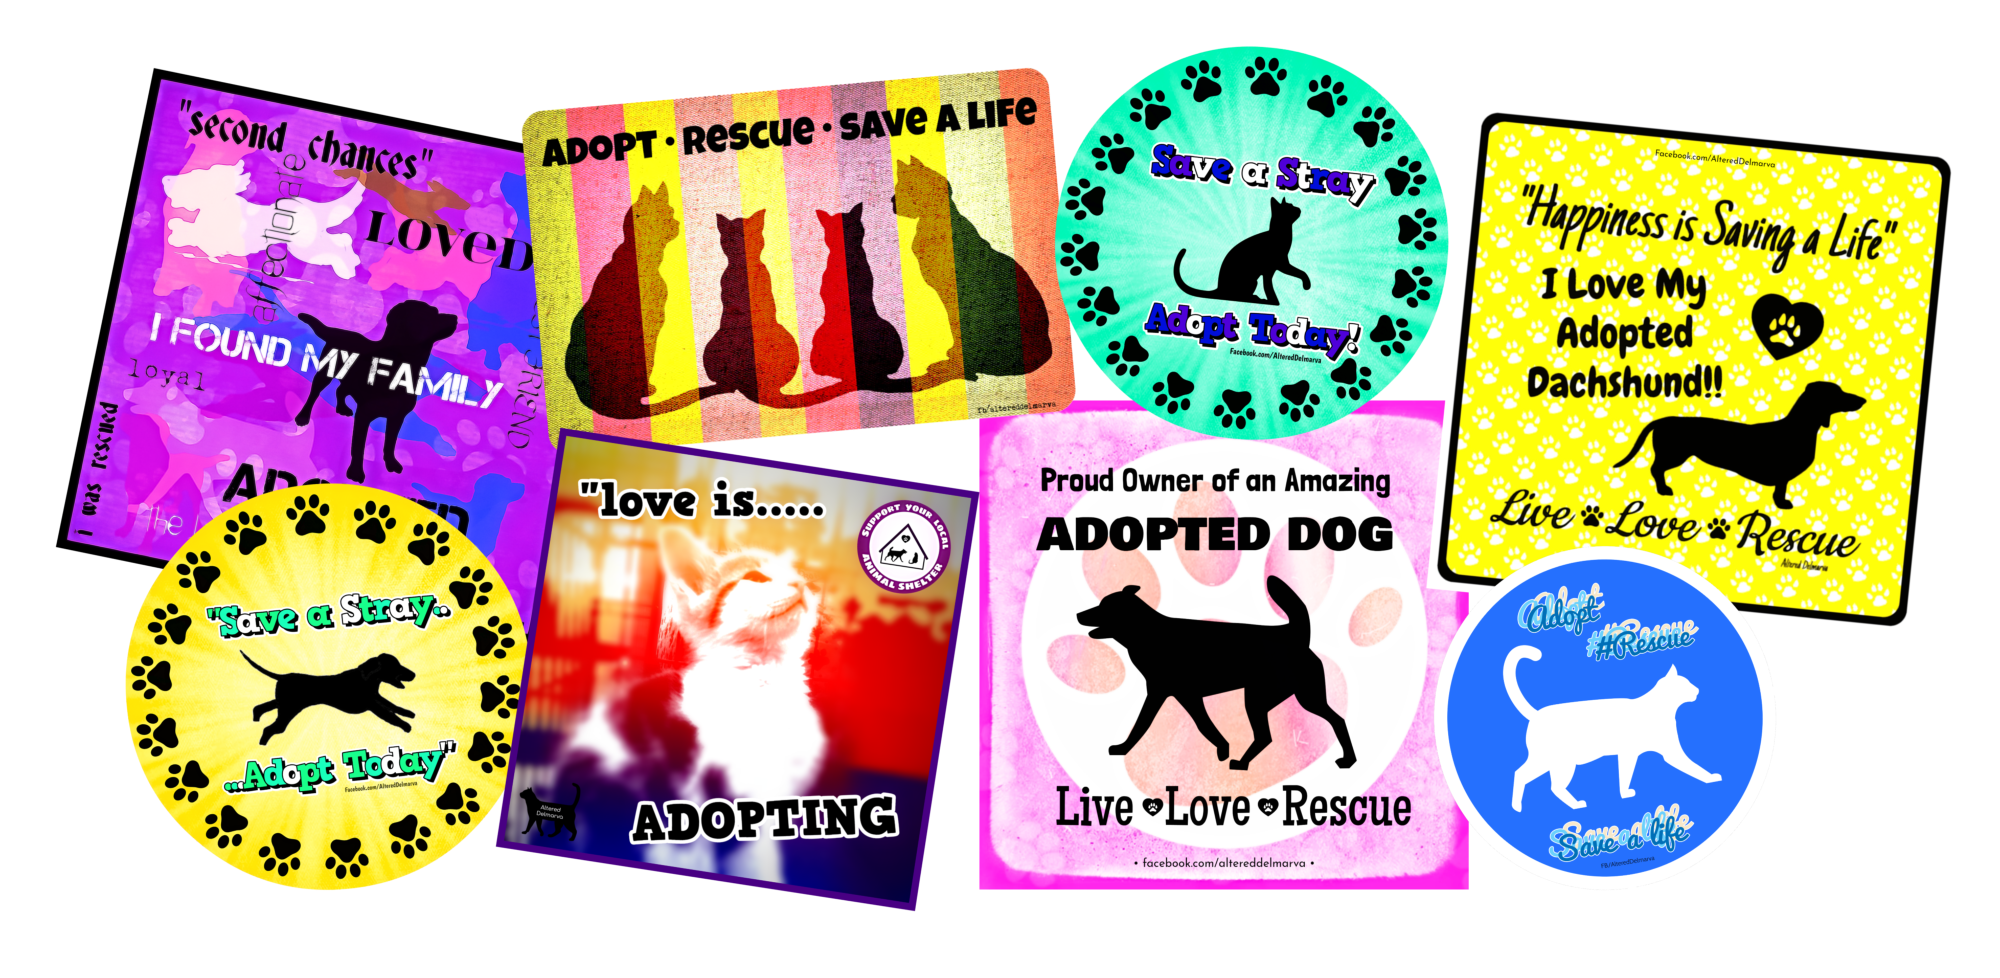 Adopted Is The Best Breed Adoption Free Clip Art Animals Images